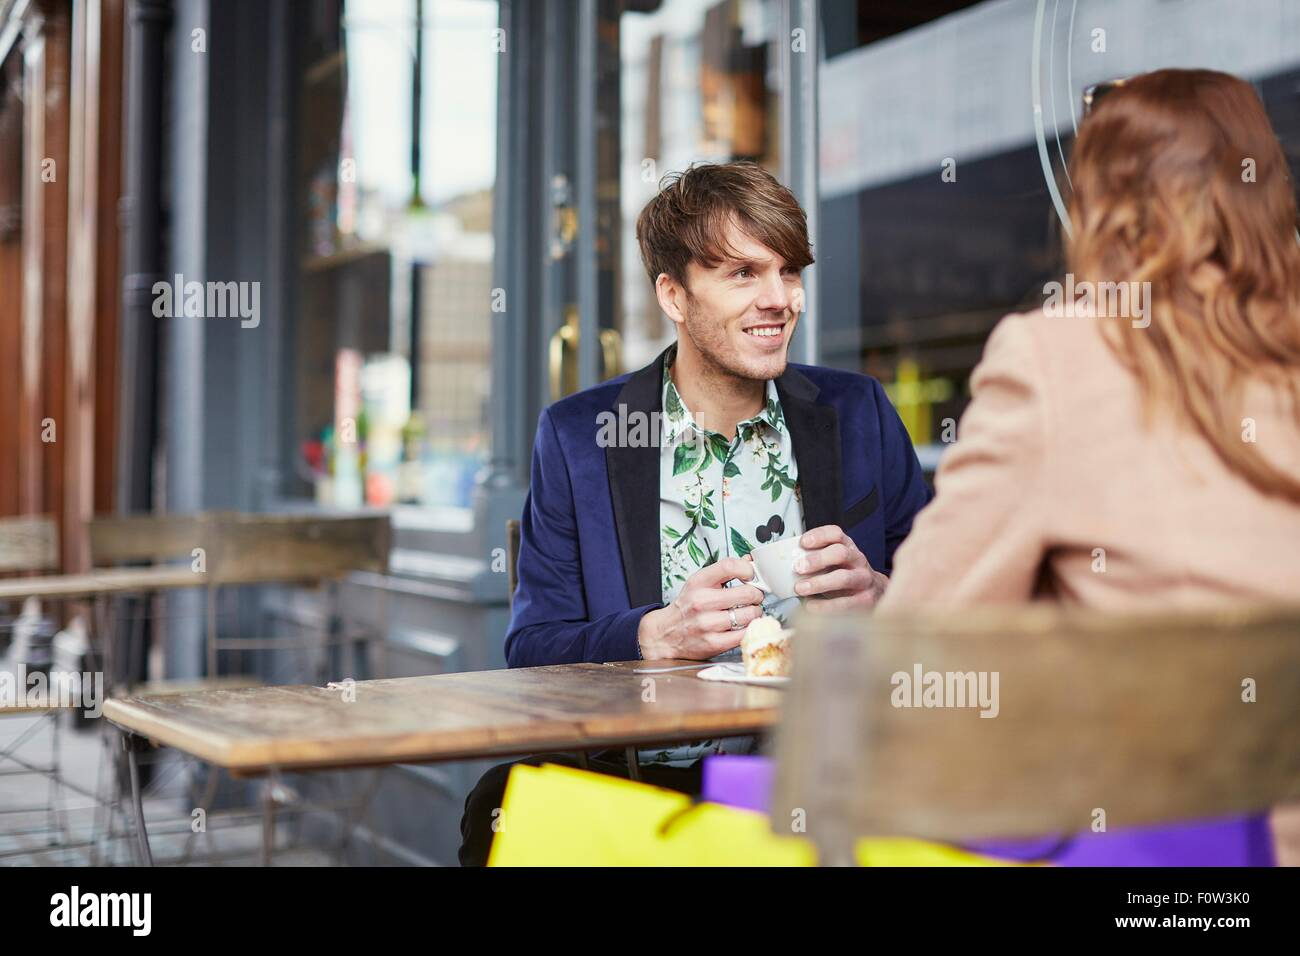 Over shoulder view of couple chatting at sidewalk cafe, London, UK - Stock Image